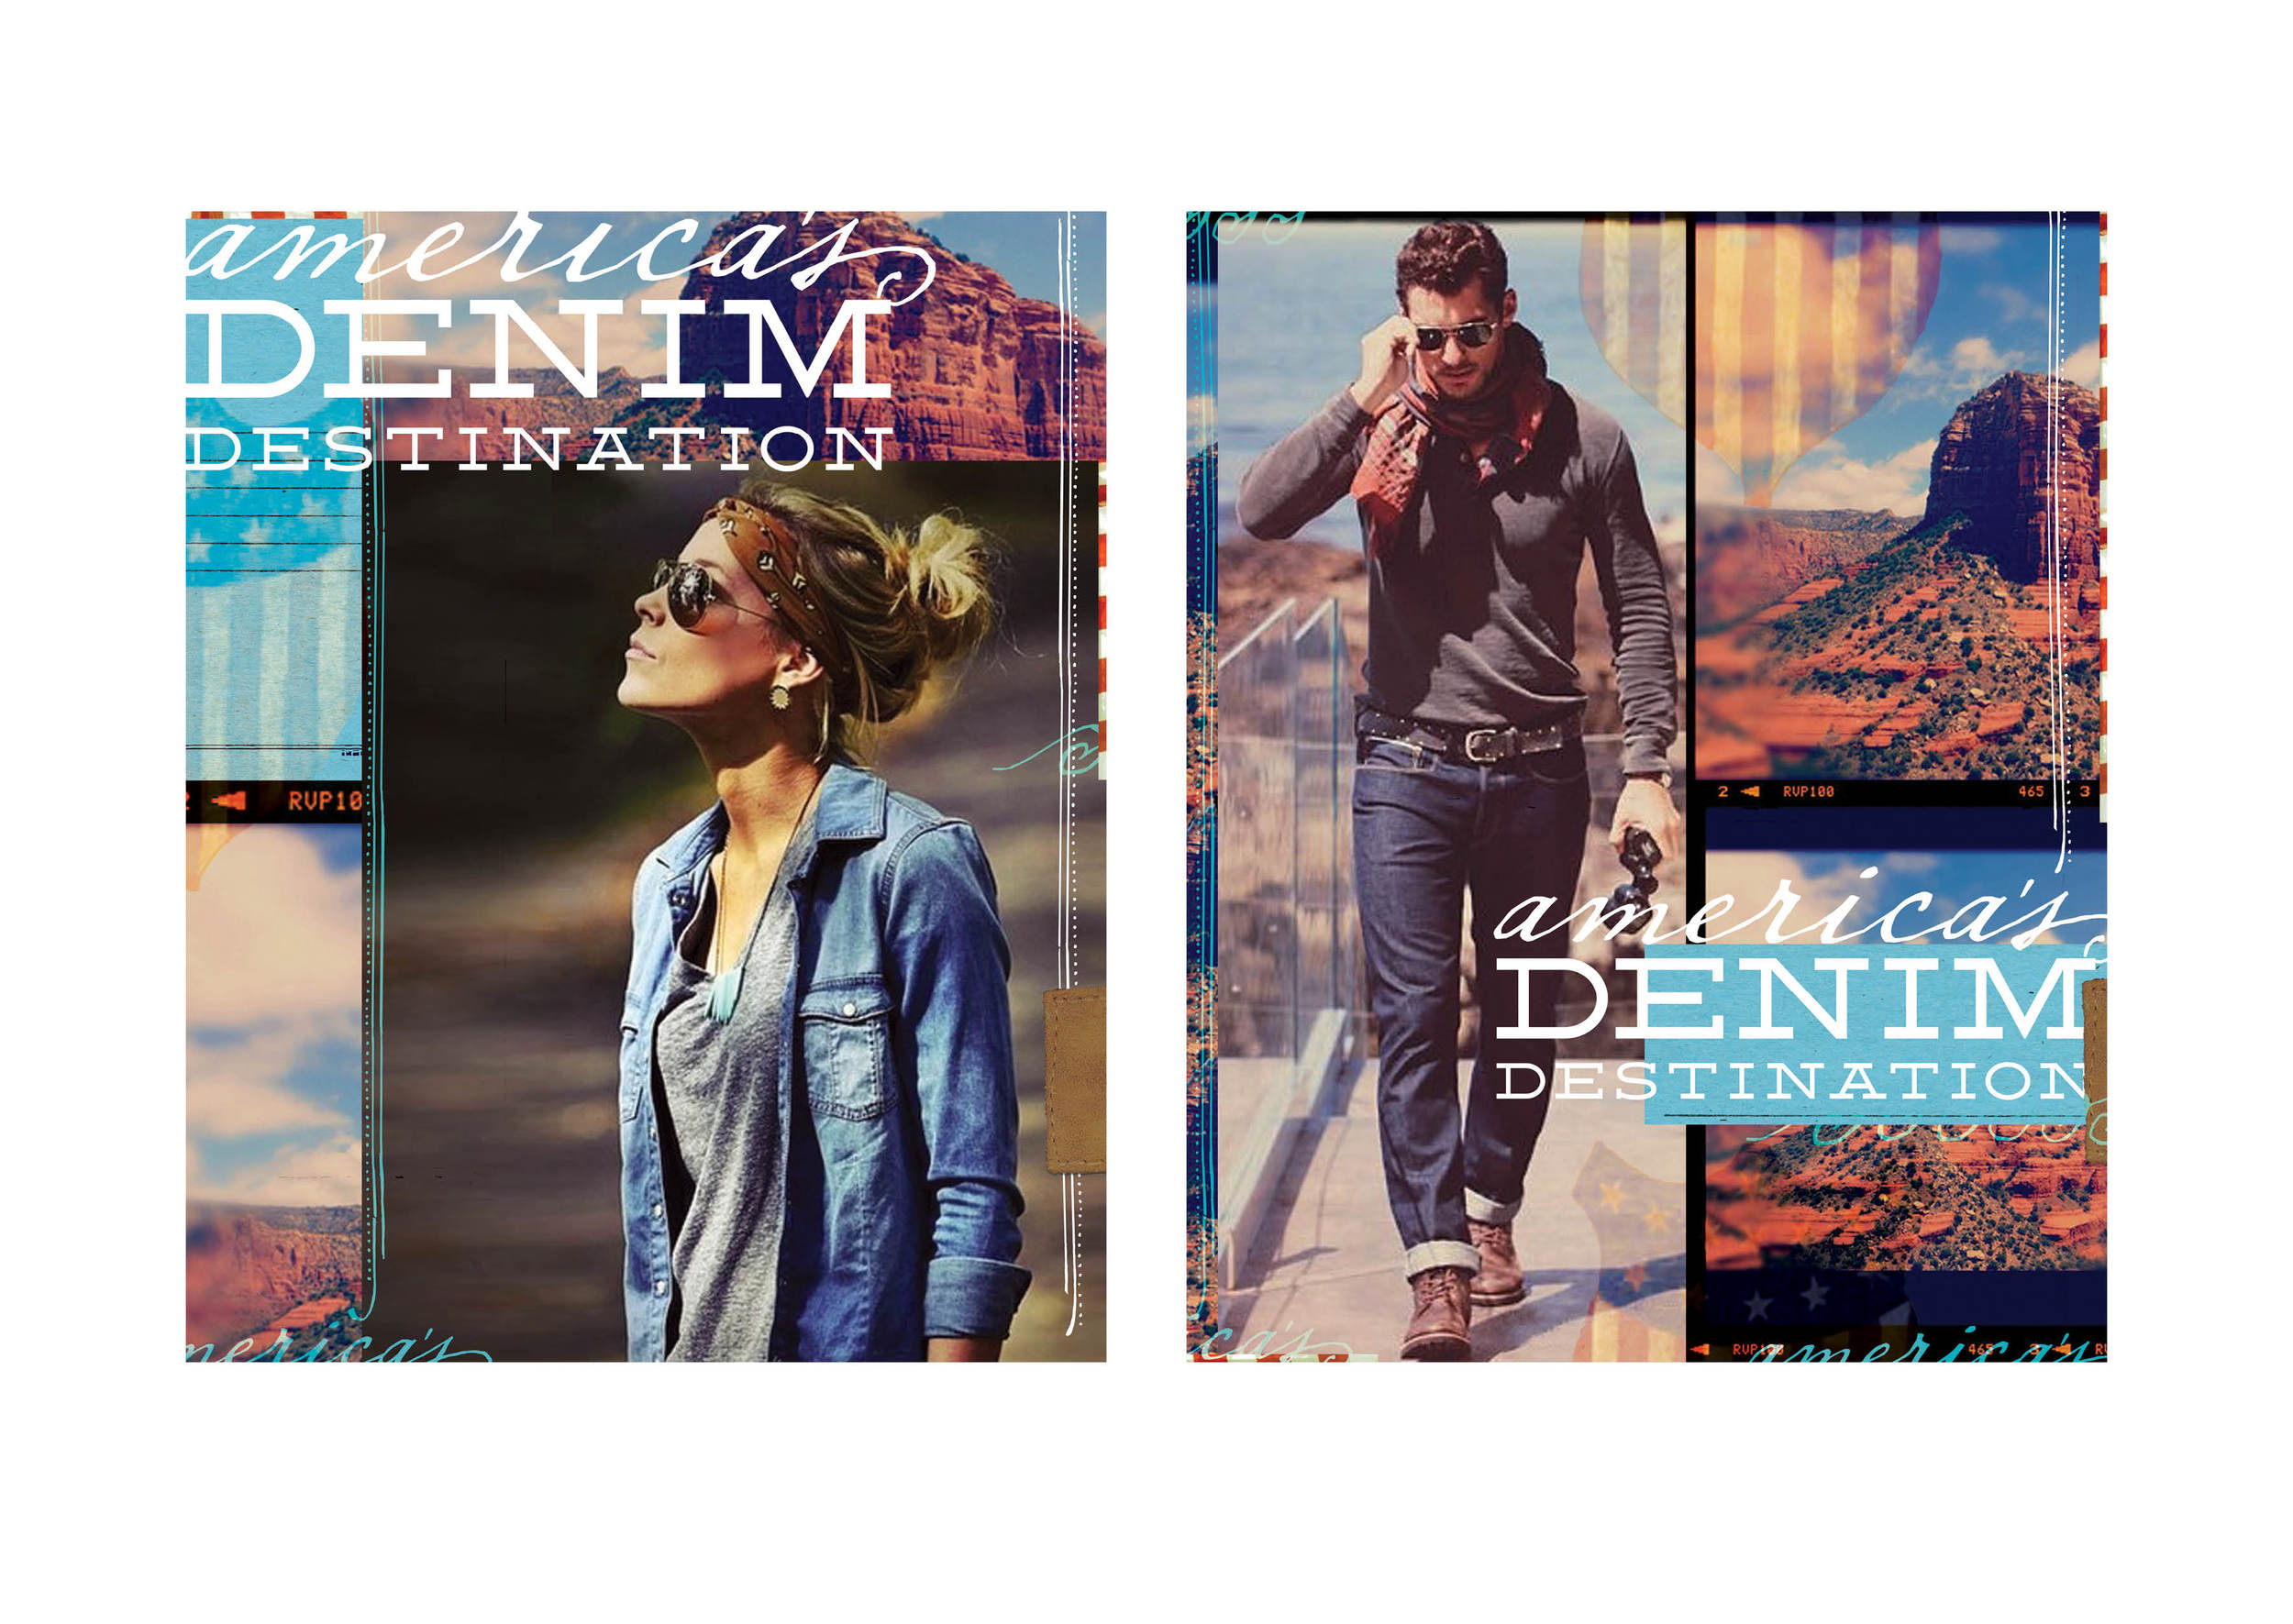 Buckle | America's Denim Destination Window Banner Concept | tashvock.com